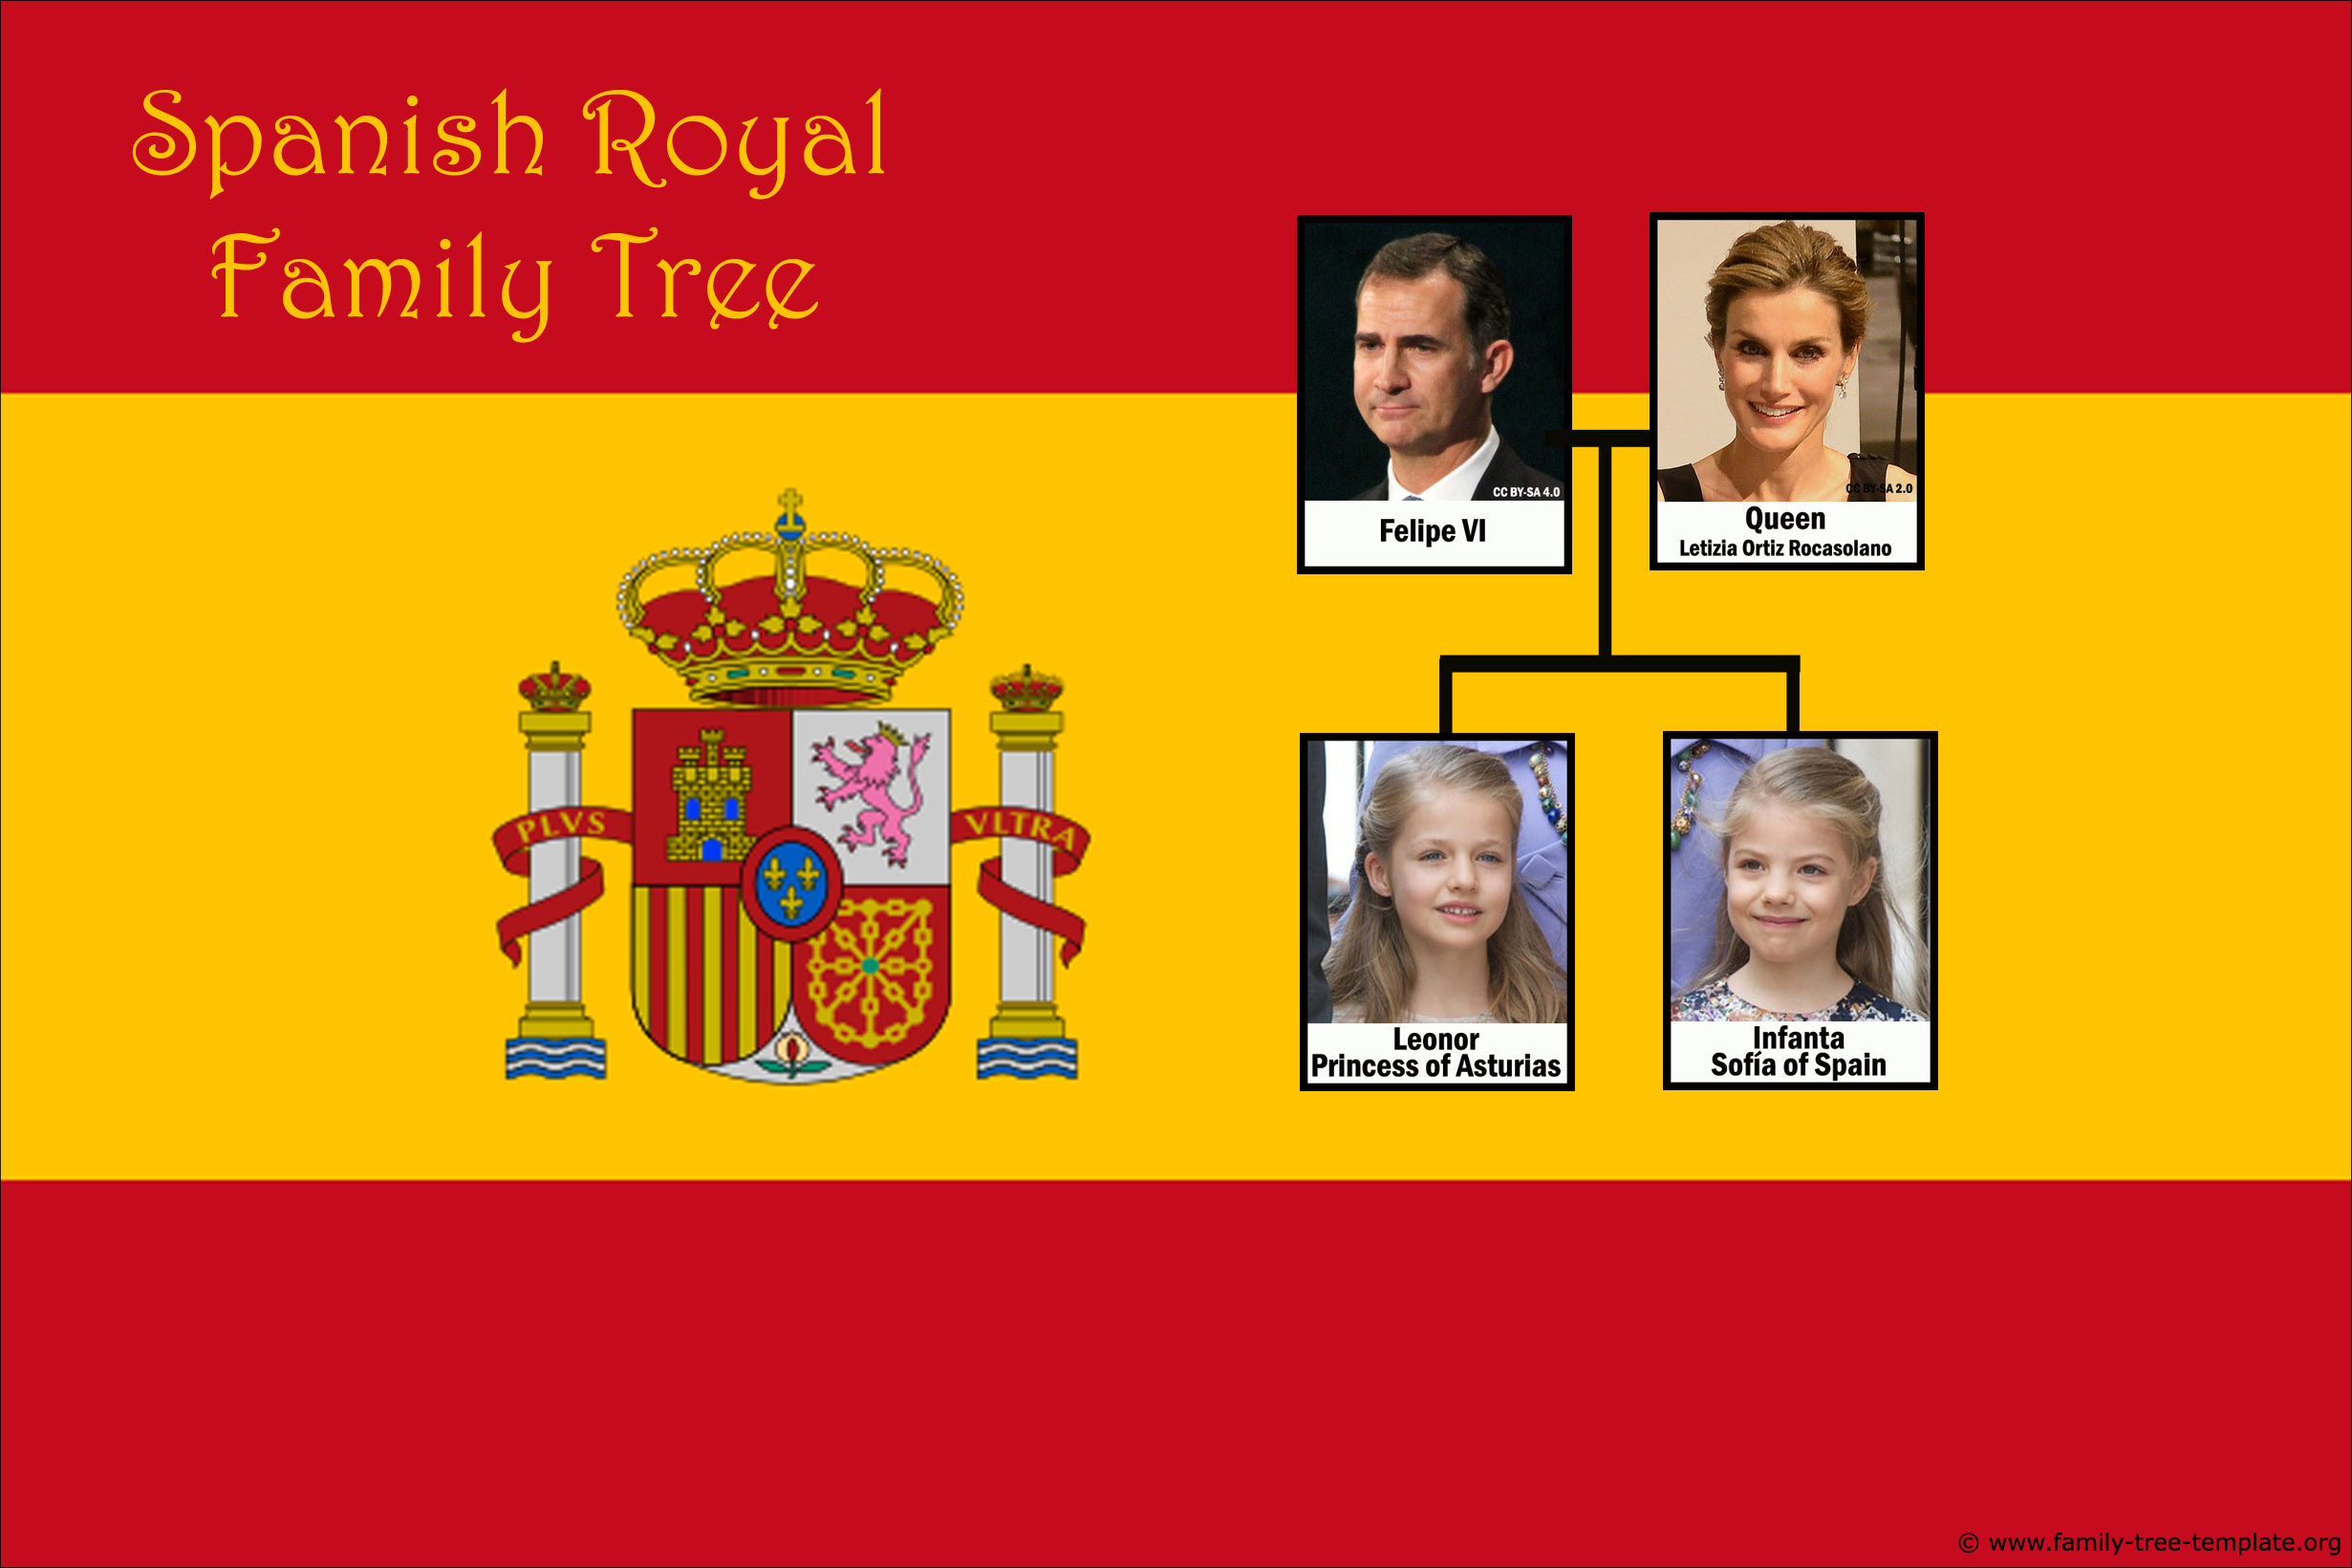 Family tree of royal Spanish King Felipe VI.